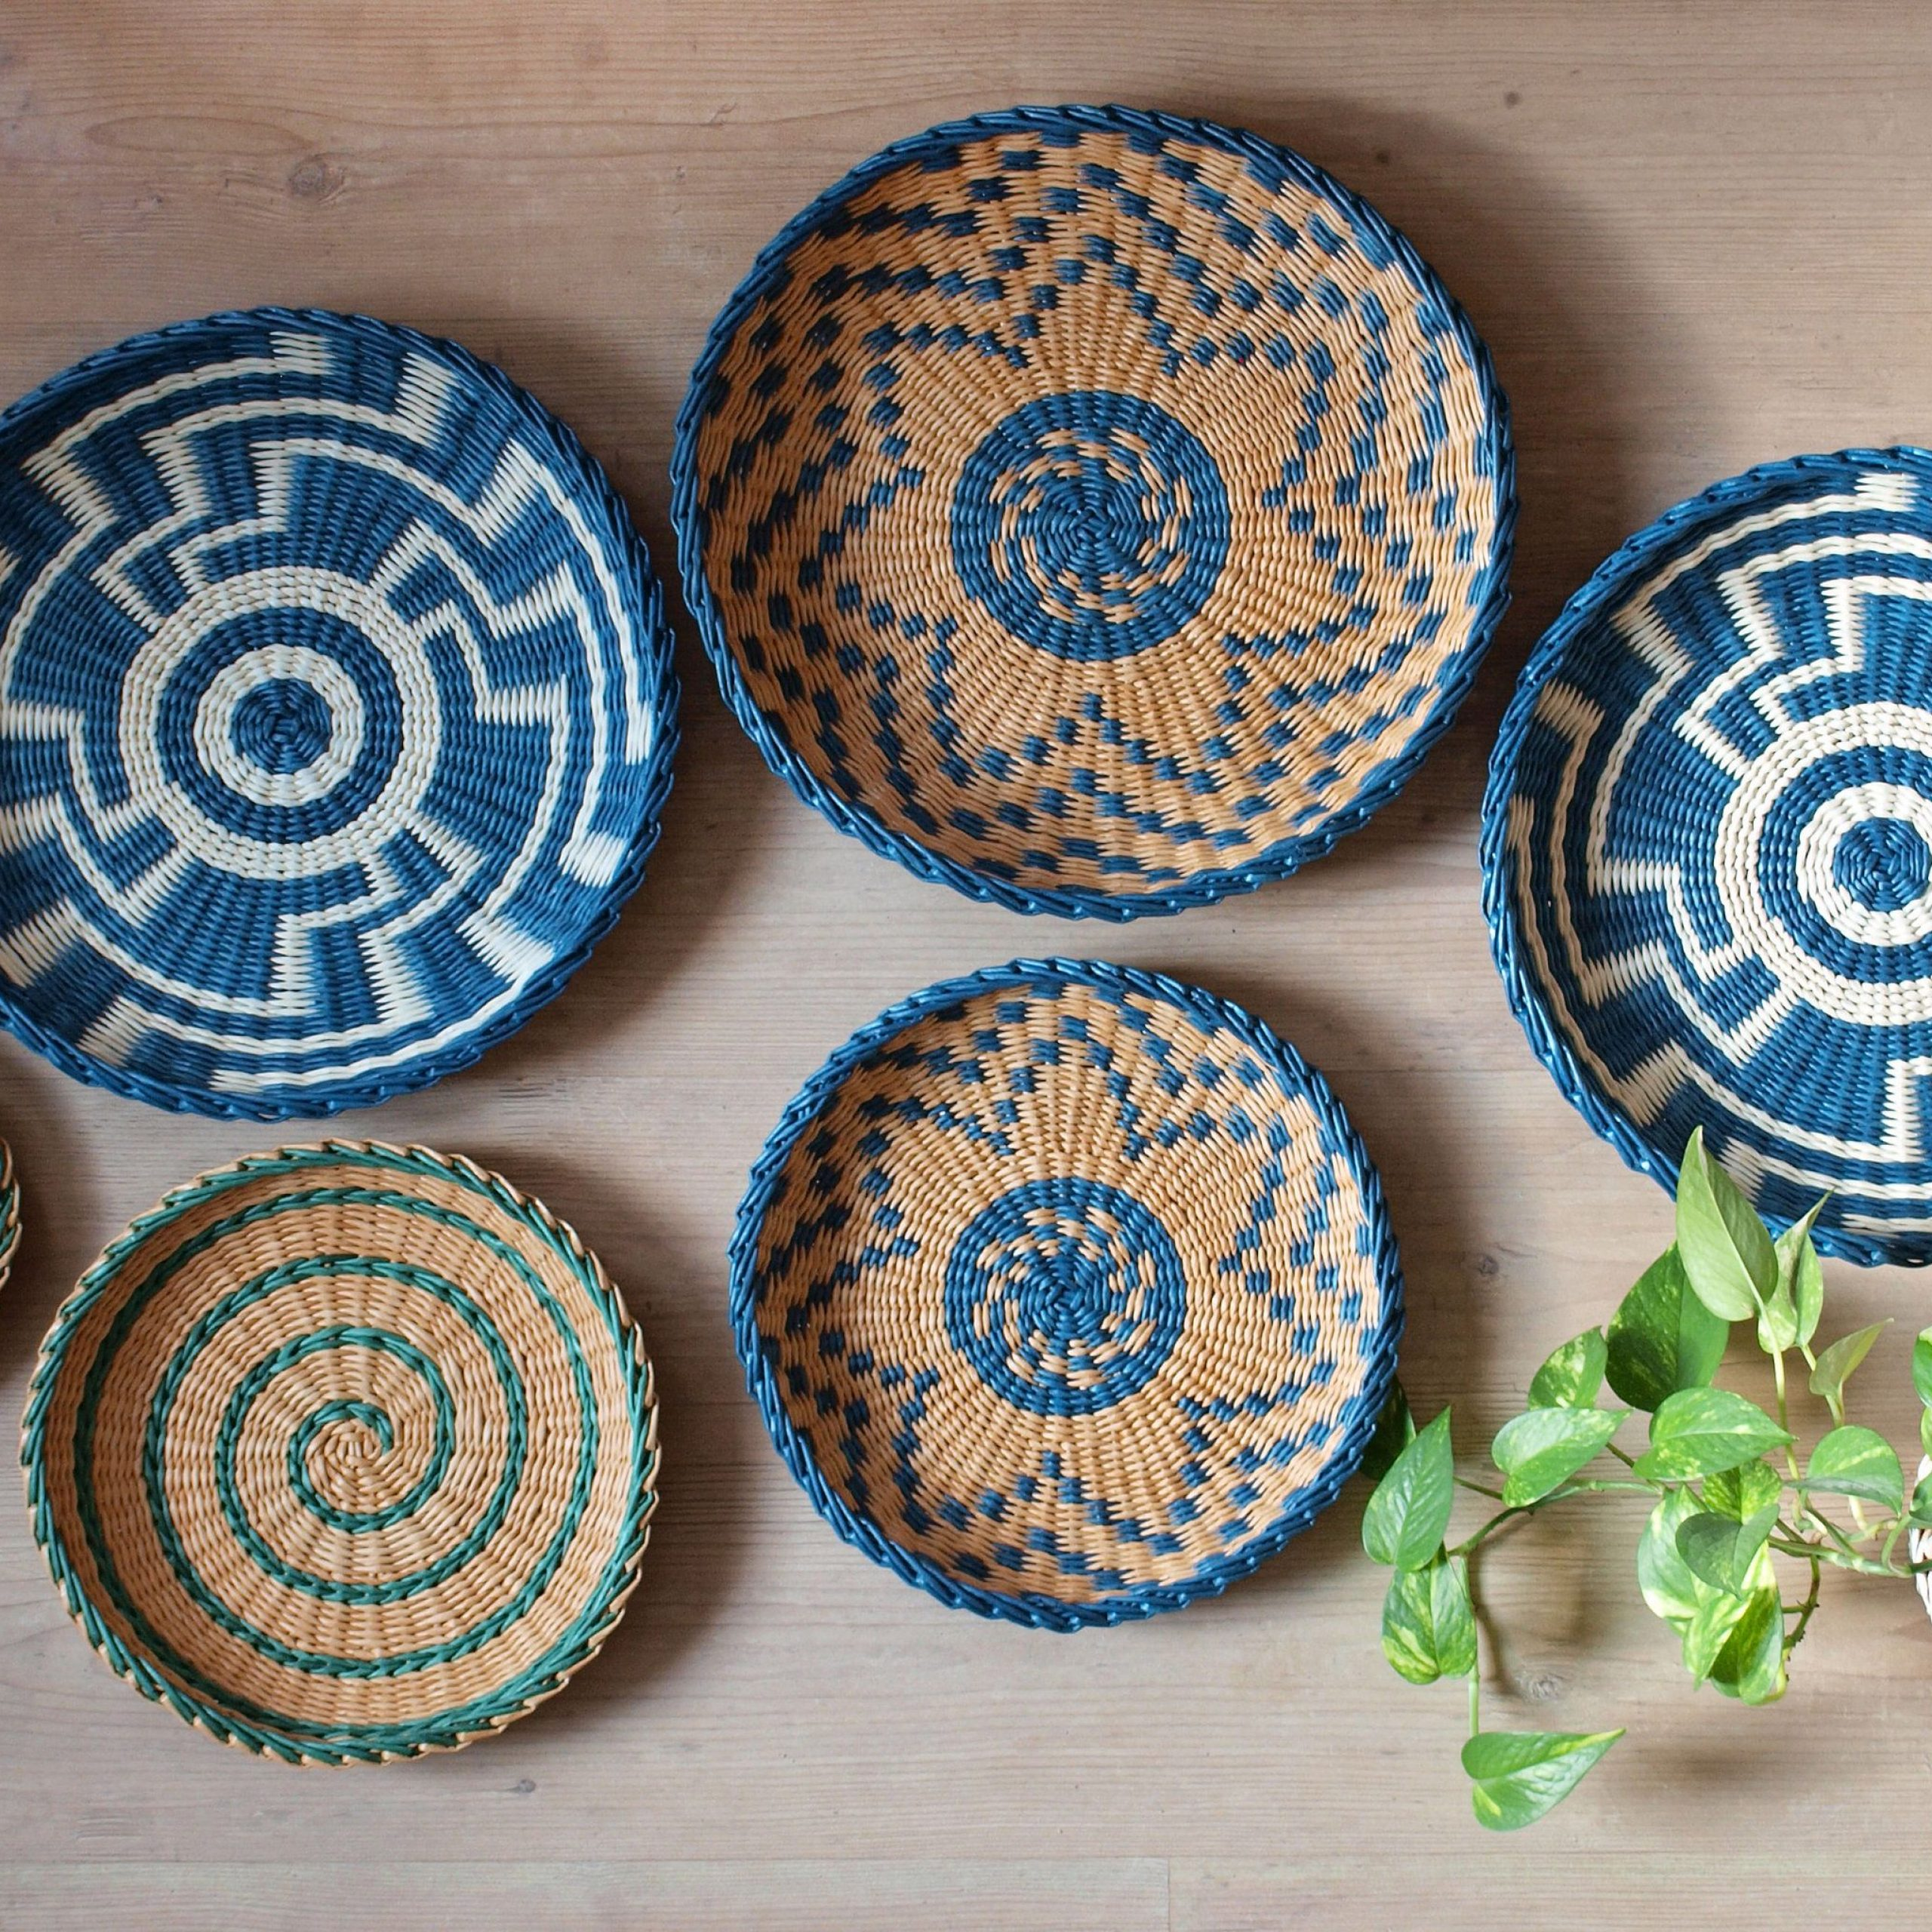 Floral Plate Wall Décor By World Menagerie Intended For Latest Set Of 6 Wall Art Baskets African Inspired Blue Green Woven (View 19 of 20)